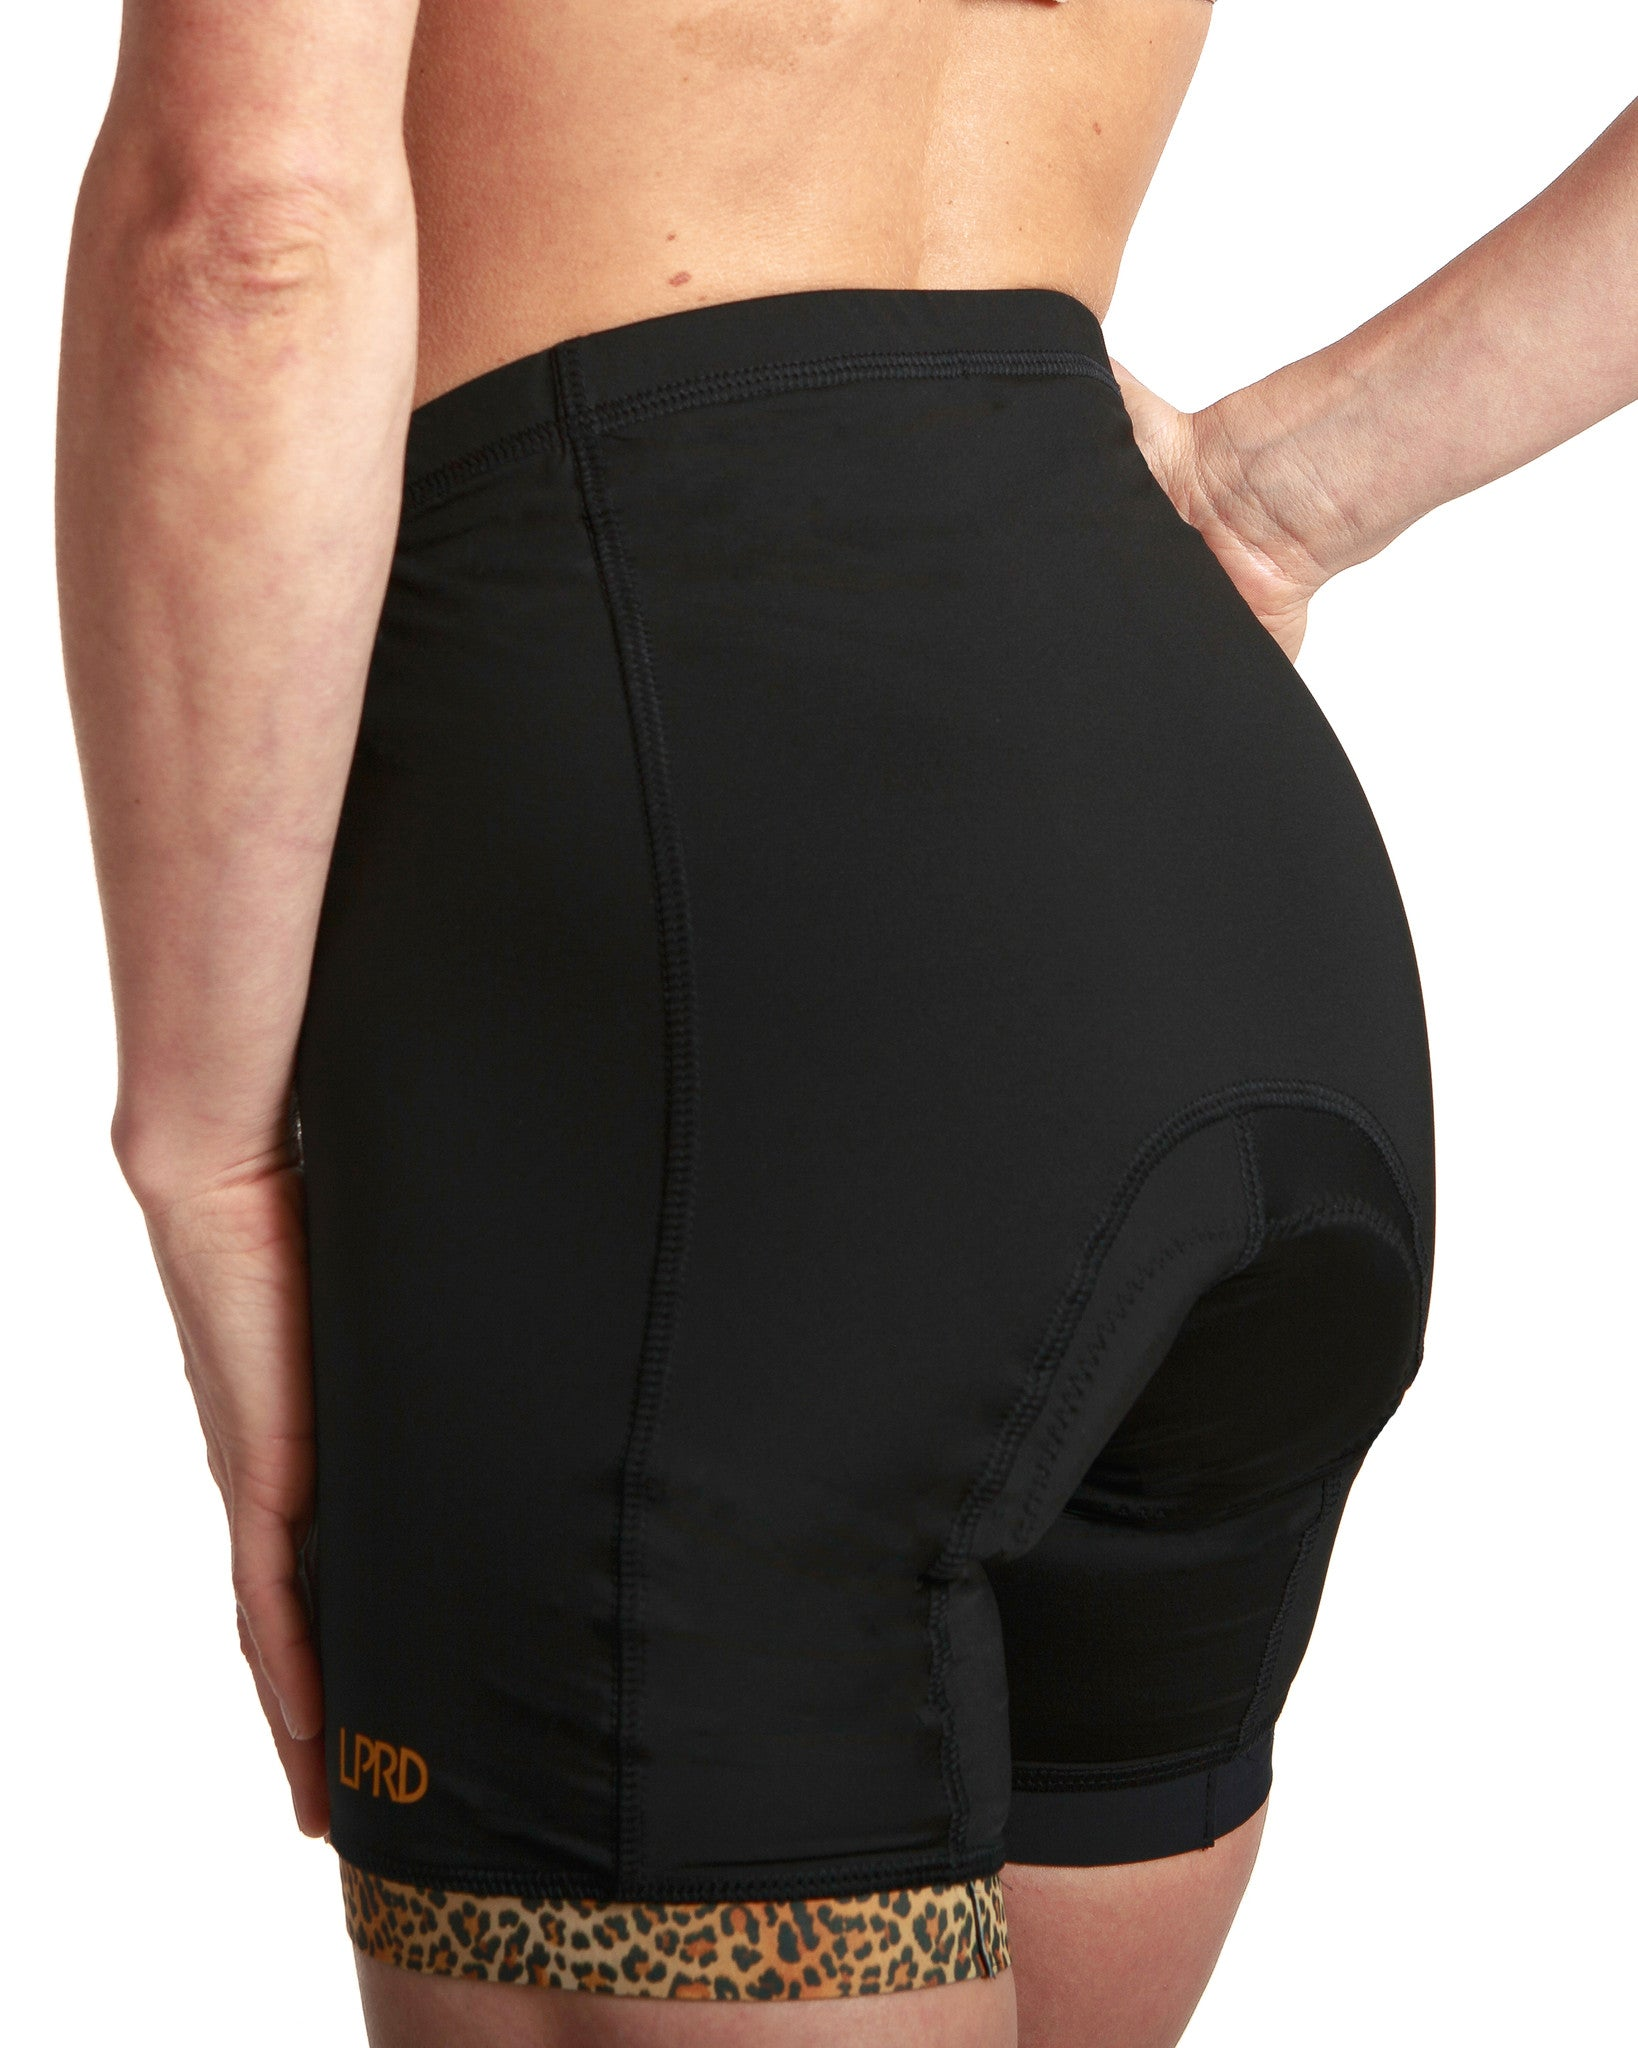 LPRD Black Cycling Shorts | Close-up Back View